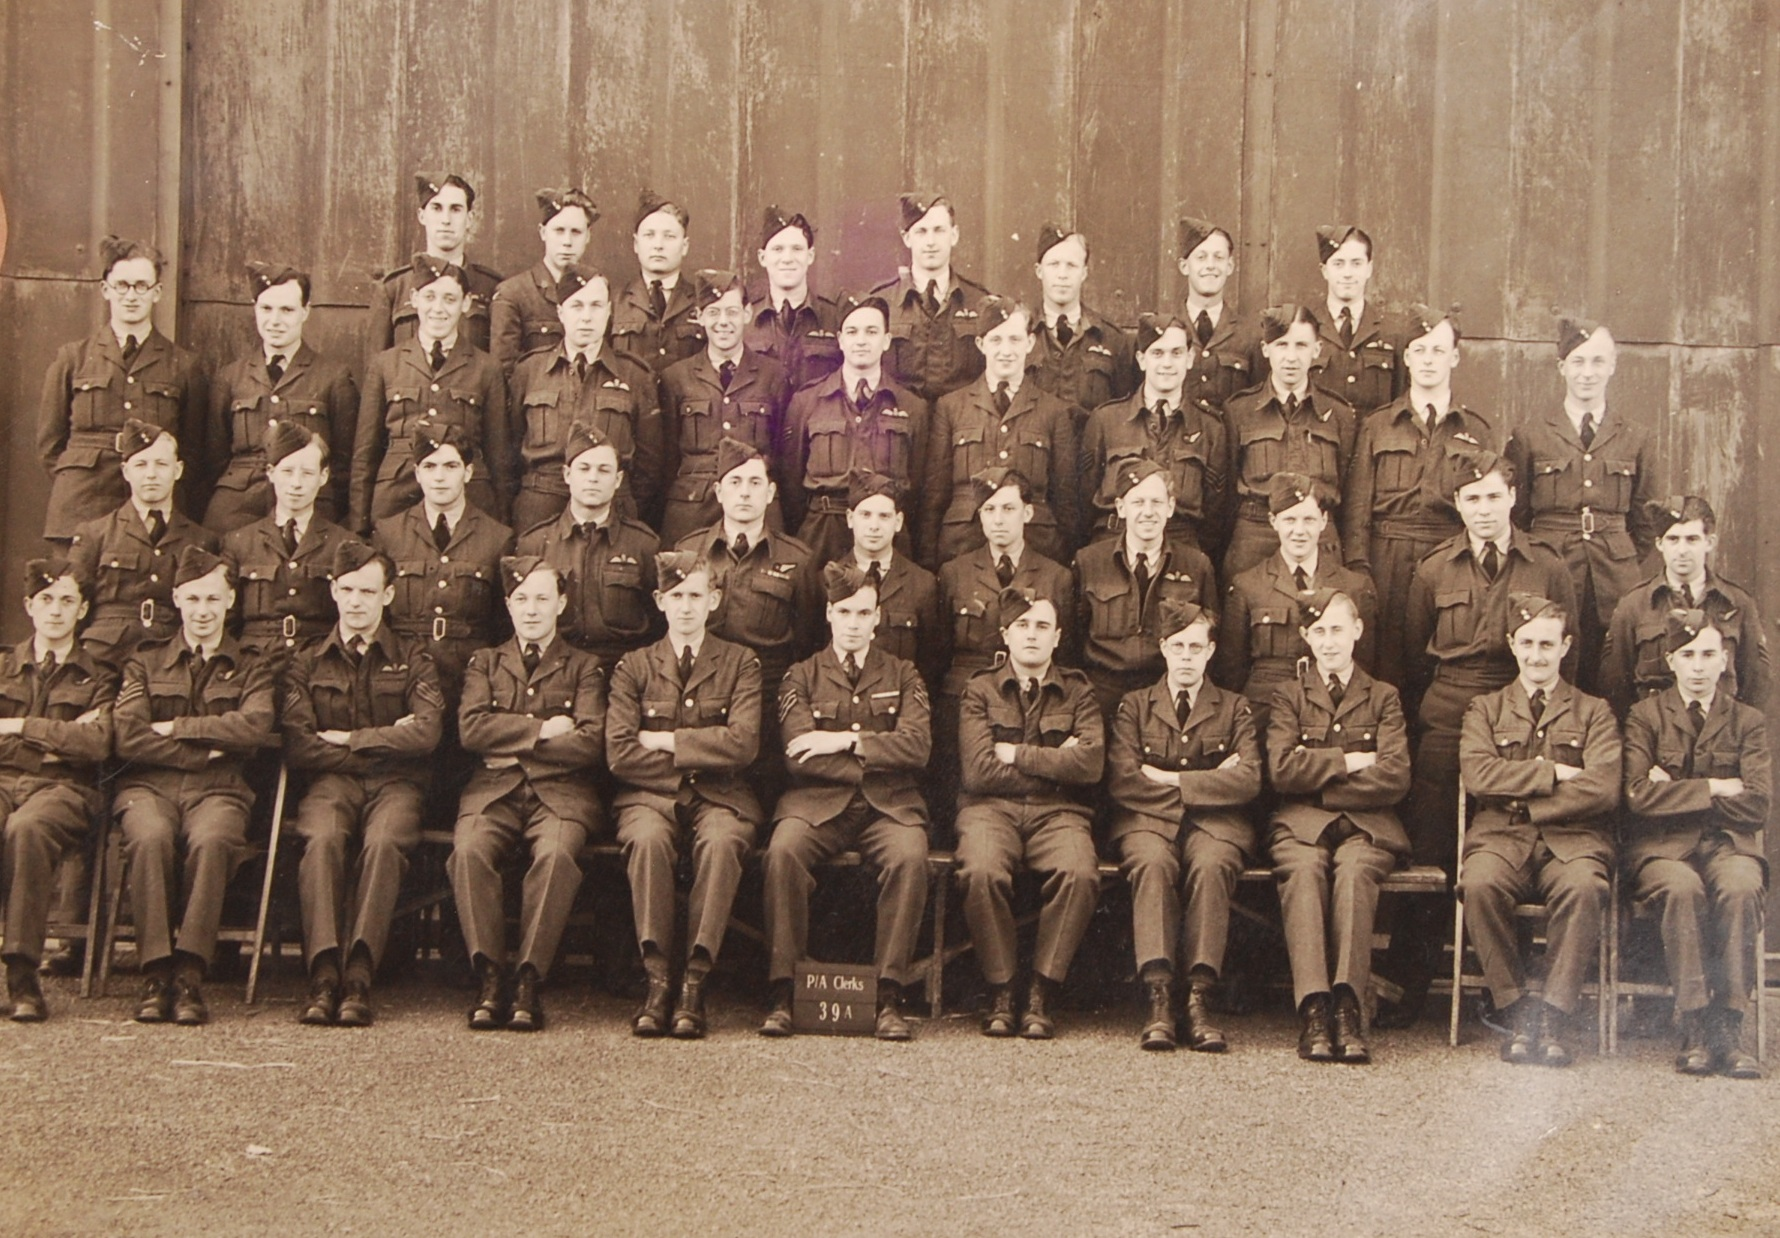 RARE UNIQUE ARCHIVE OF WWII RAF BOMBER COMMAND ITE - Image 6 of 32